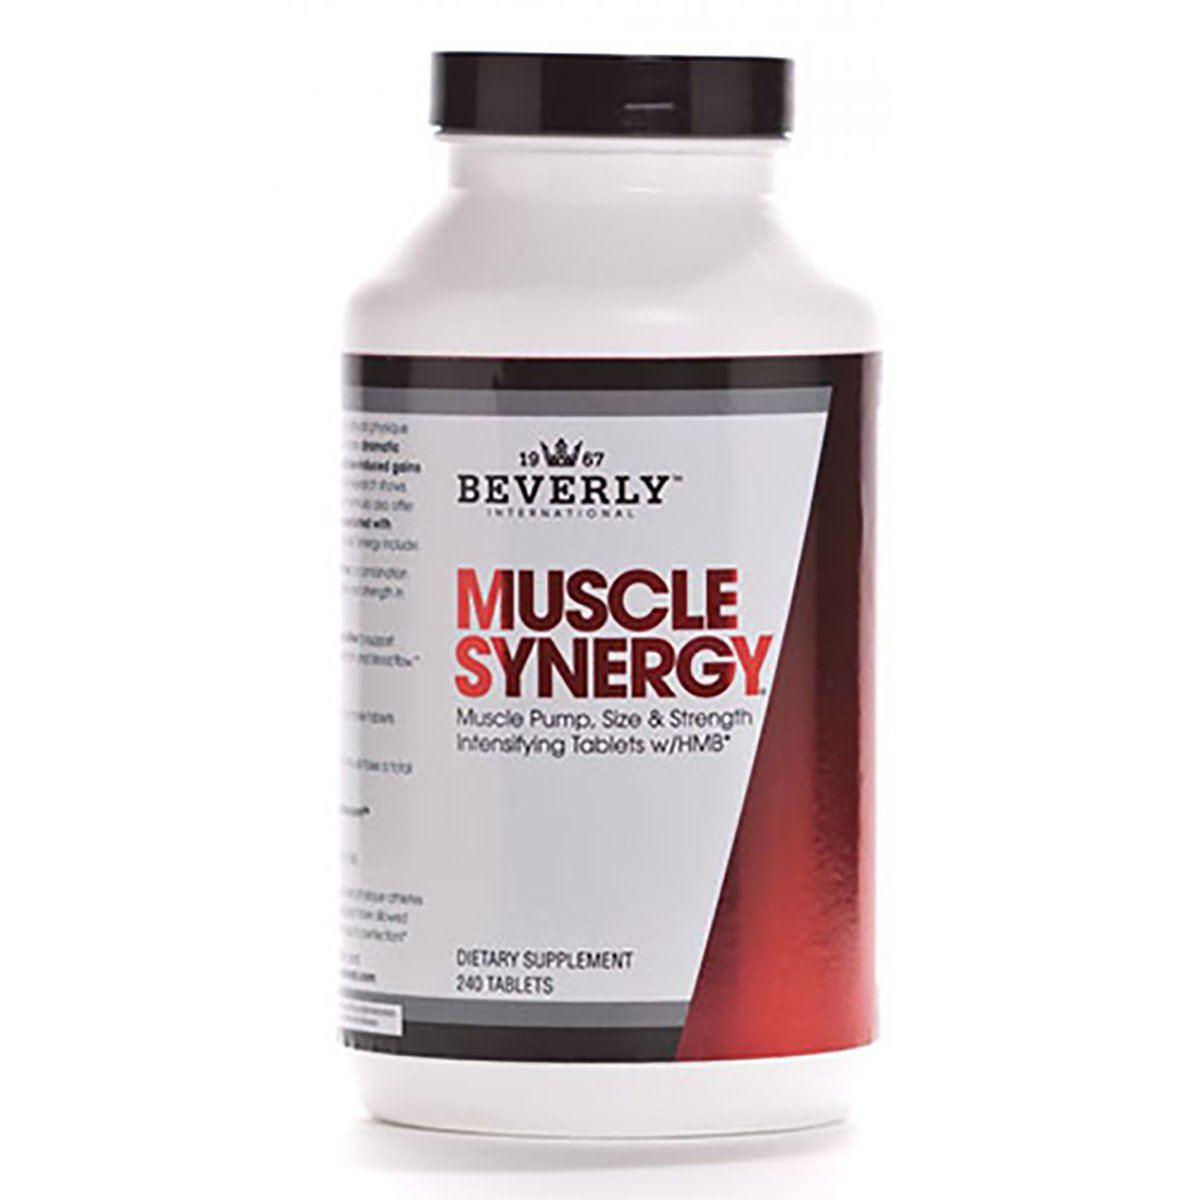 Beverly International Muscle Synergy 240 tabs Amino Acids Beverly International  (1057967308843)